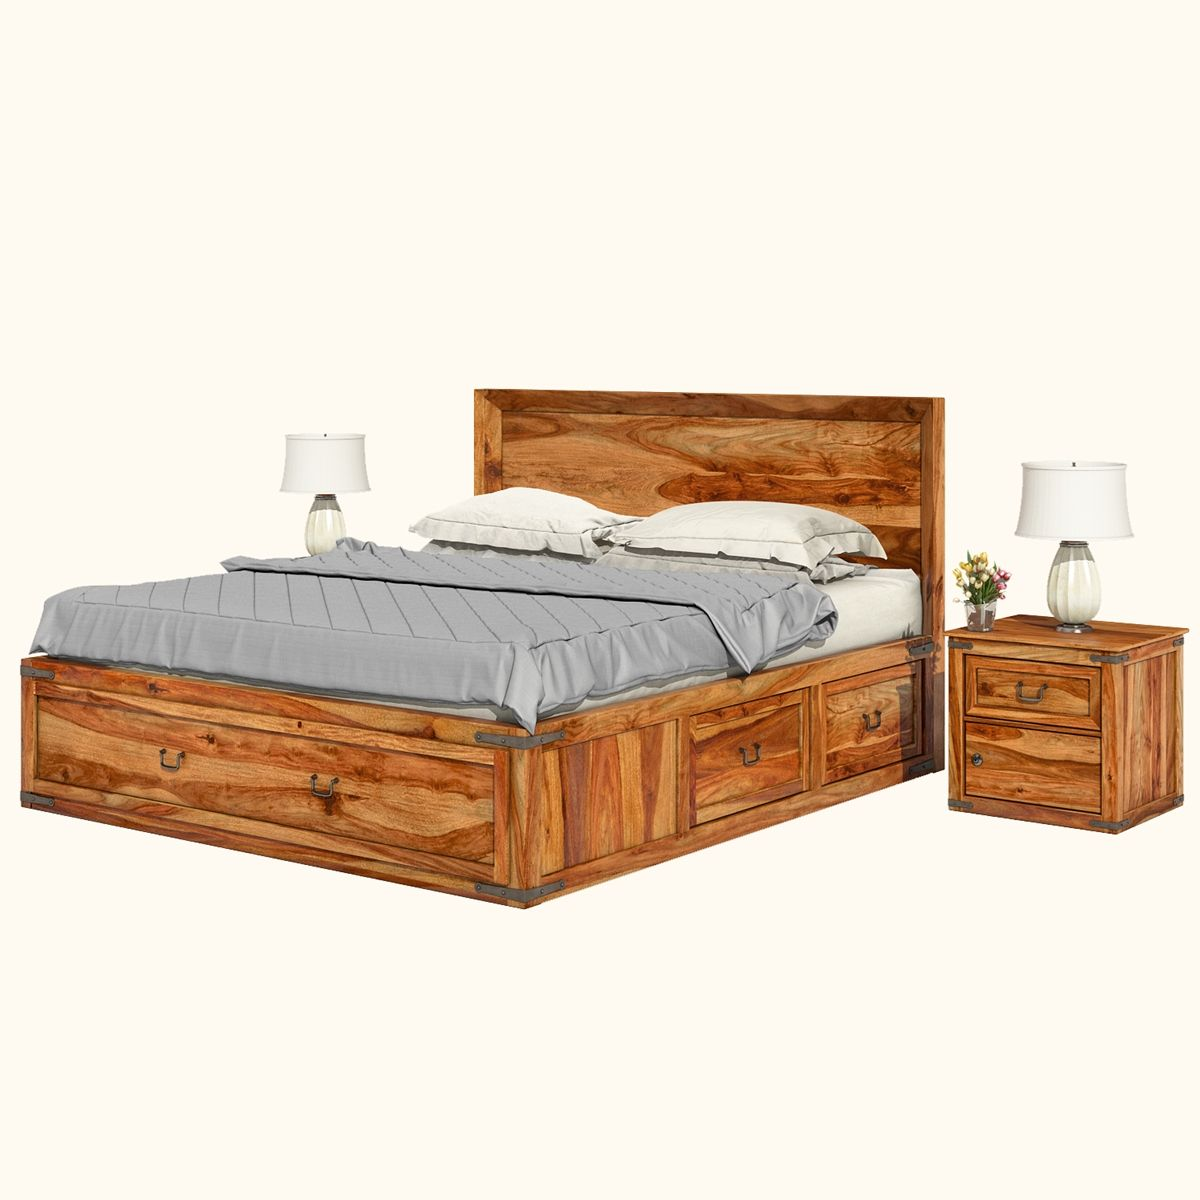 Classic Shaker Solid Wood Platform Captain S Bed W 2 End Tables